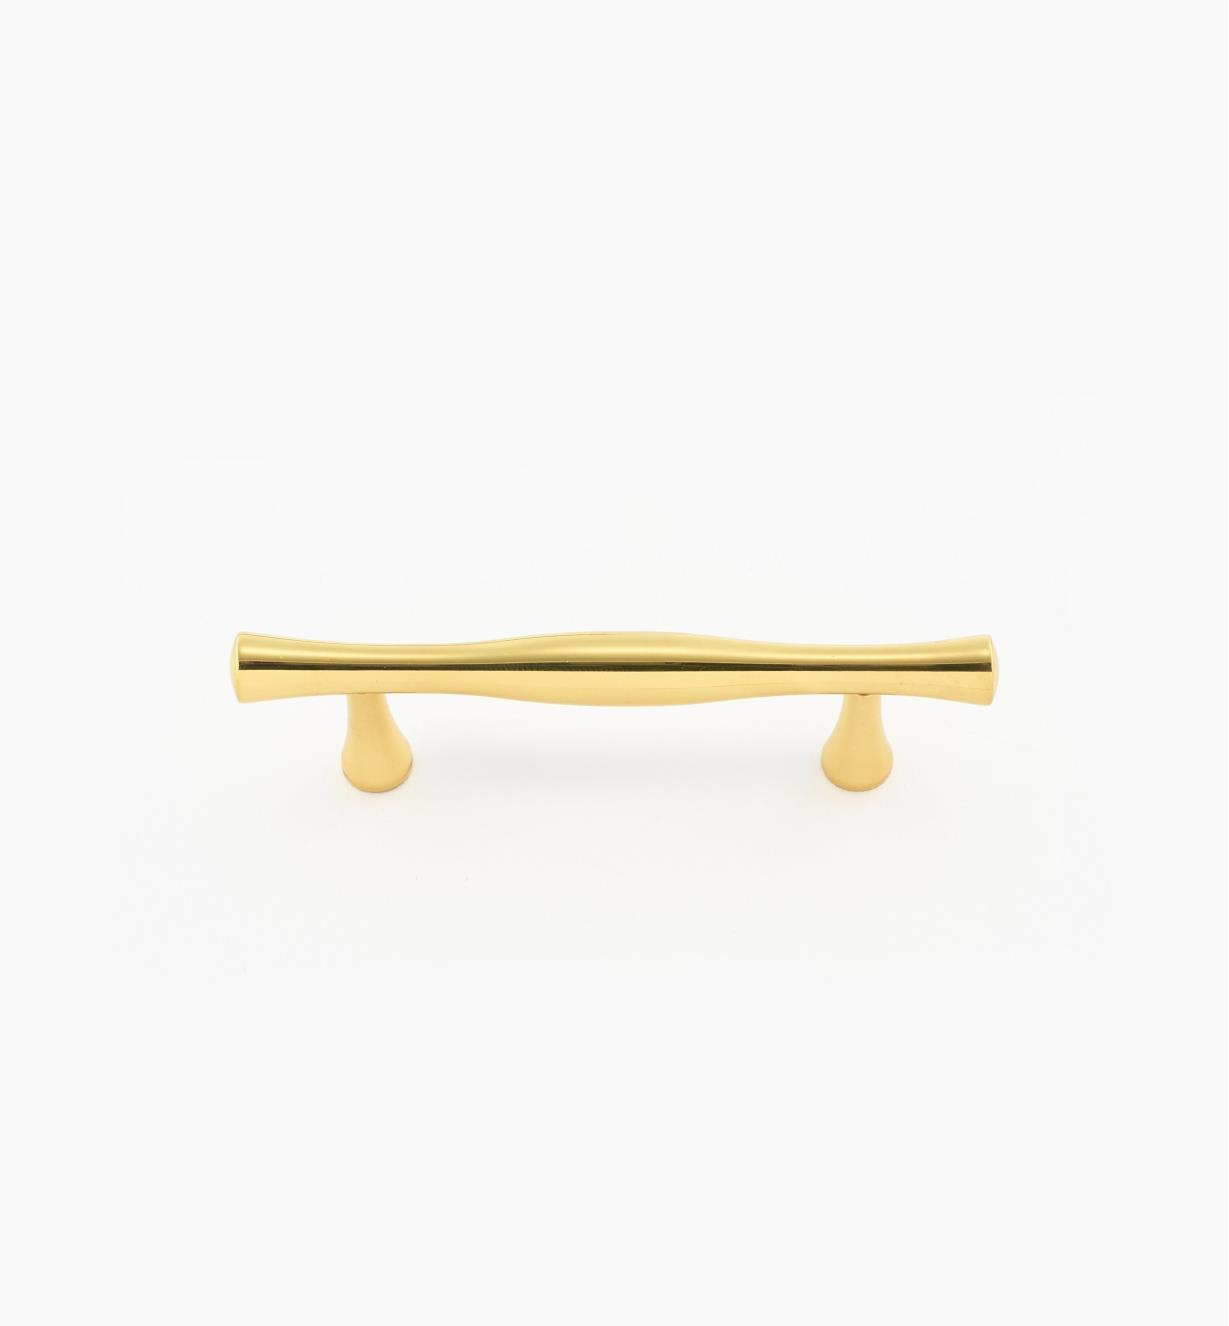 00W5880 - 64mm Turned Polished Brass Handle